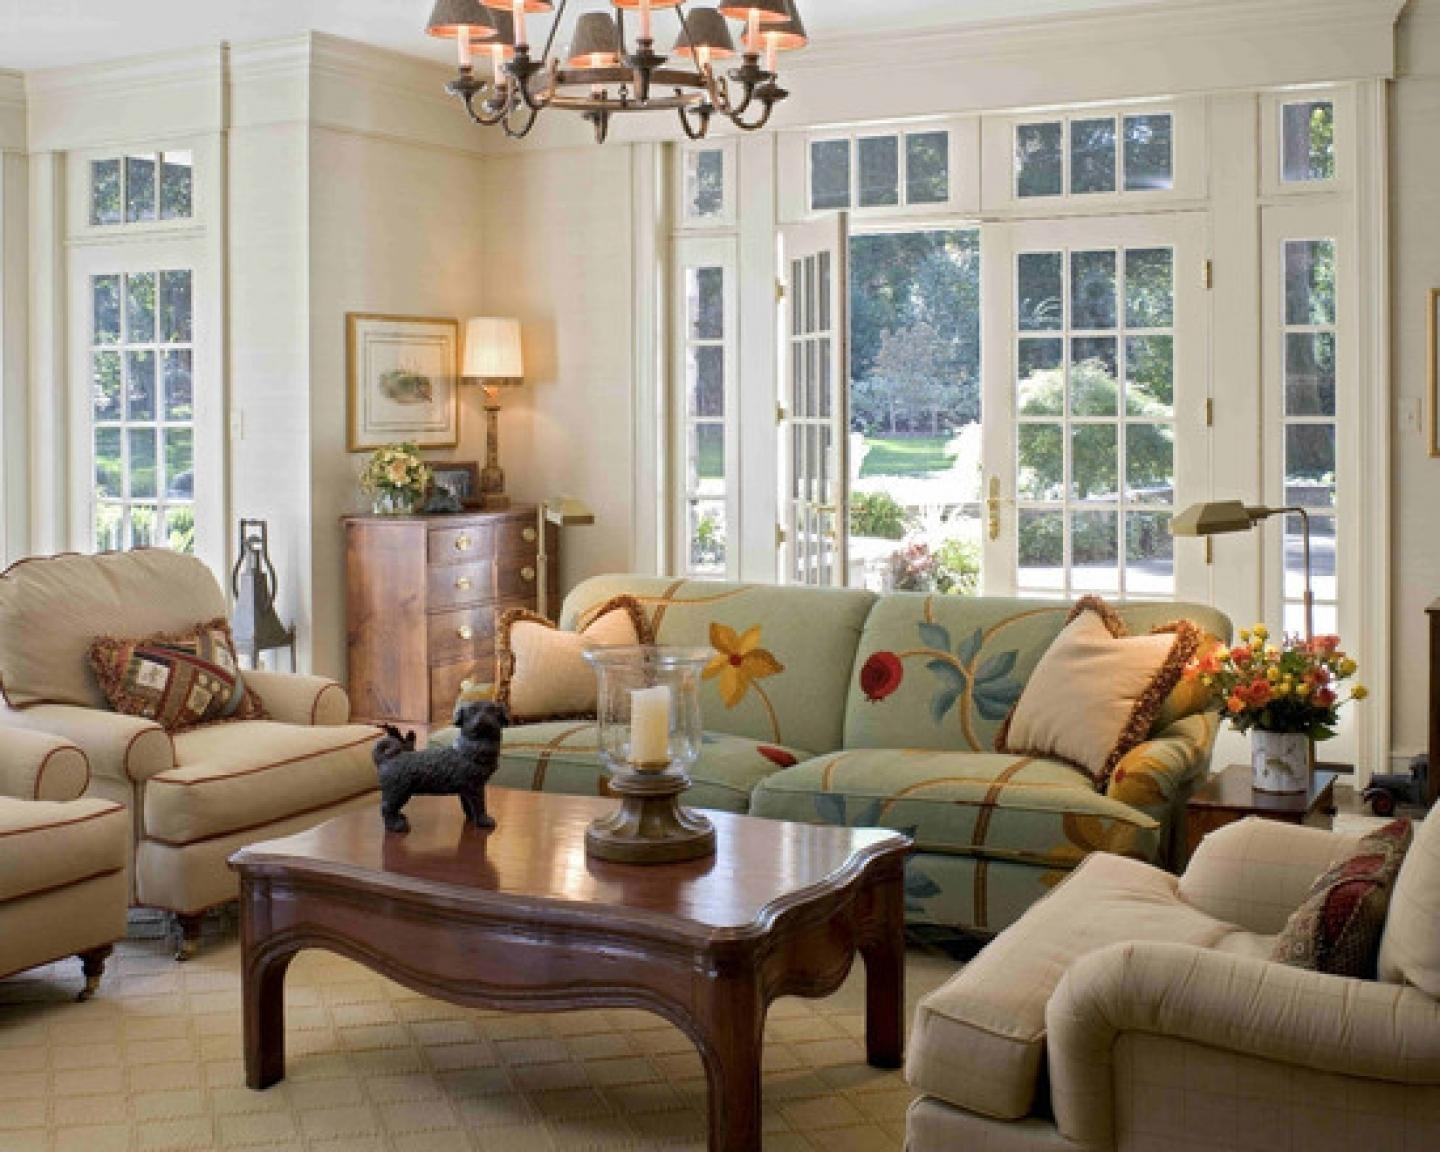 Sofas Center : Country Style Sofas In Floral Print And Loveseats Intended For Country Style Sofas (Image 13 of 20)